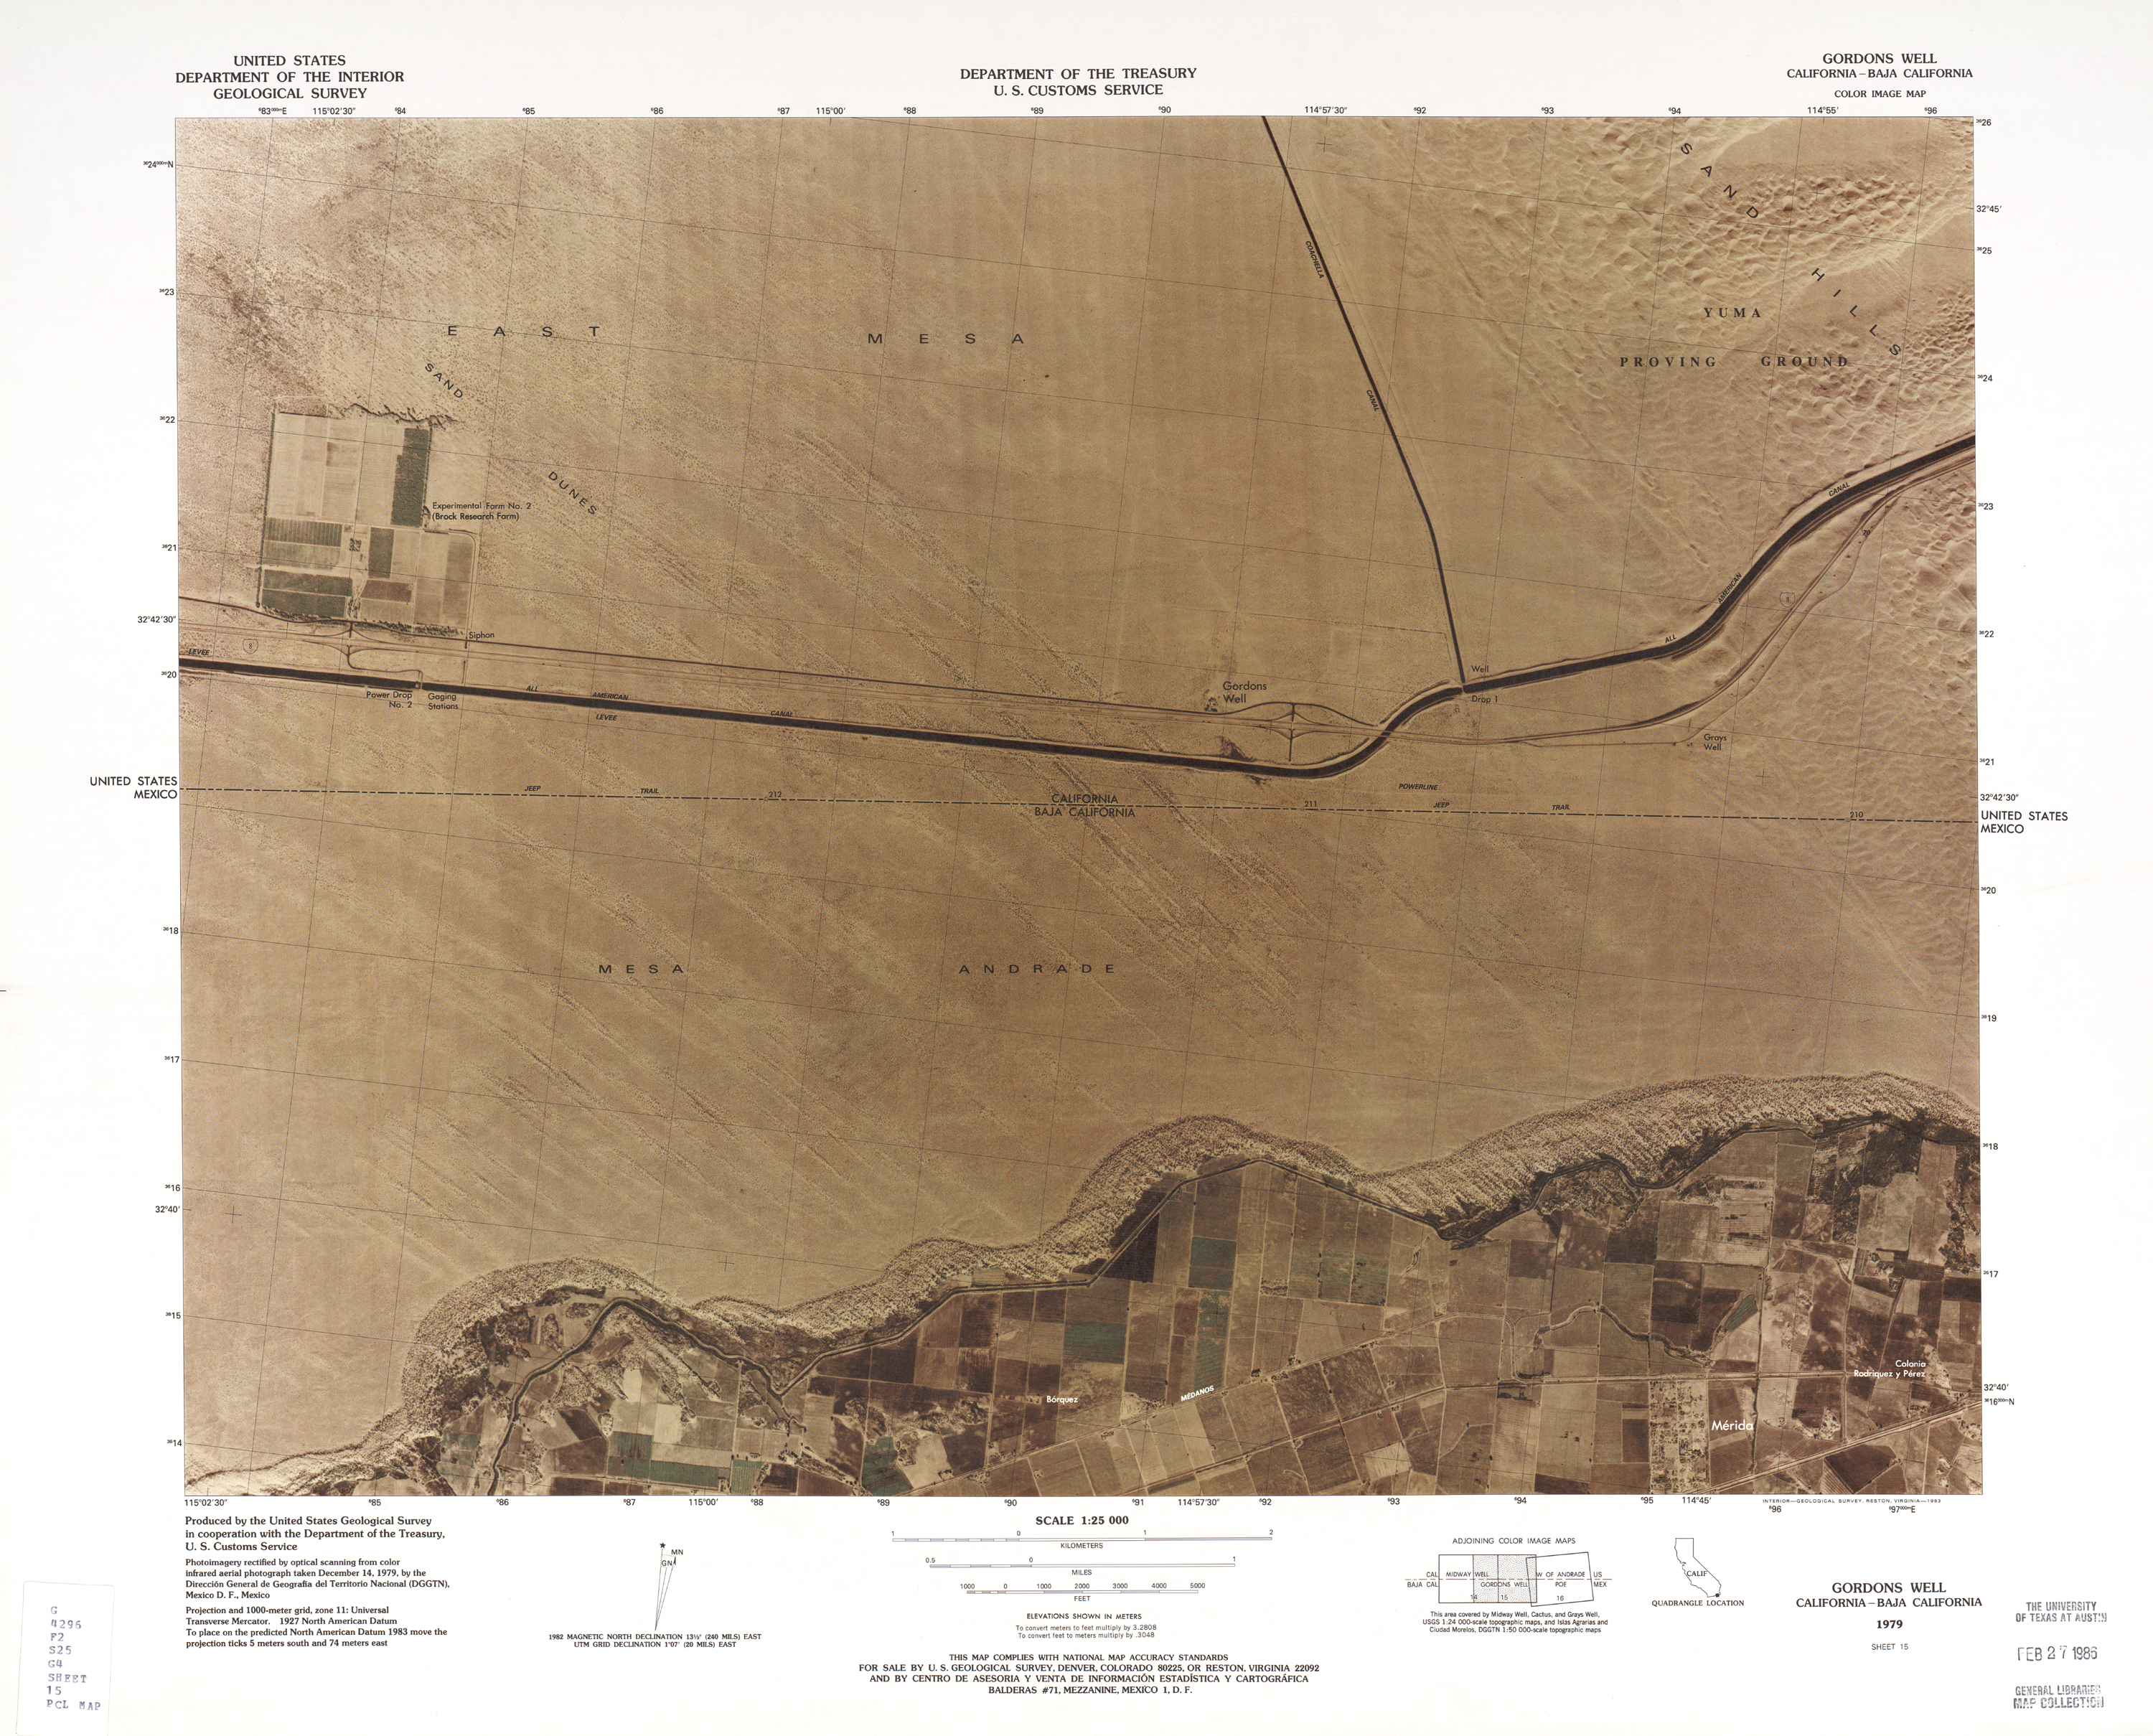 united states mexico border color image map series us geological survey and us customs service 1979 1983